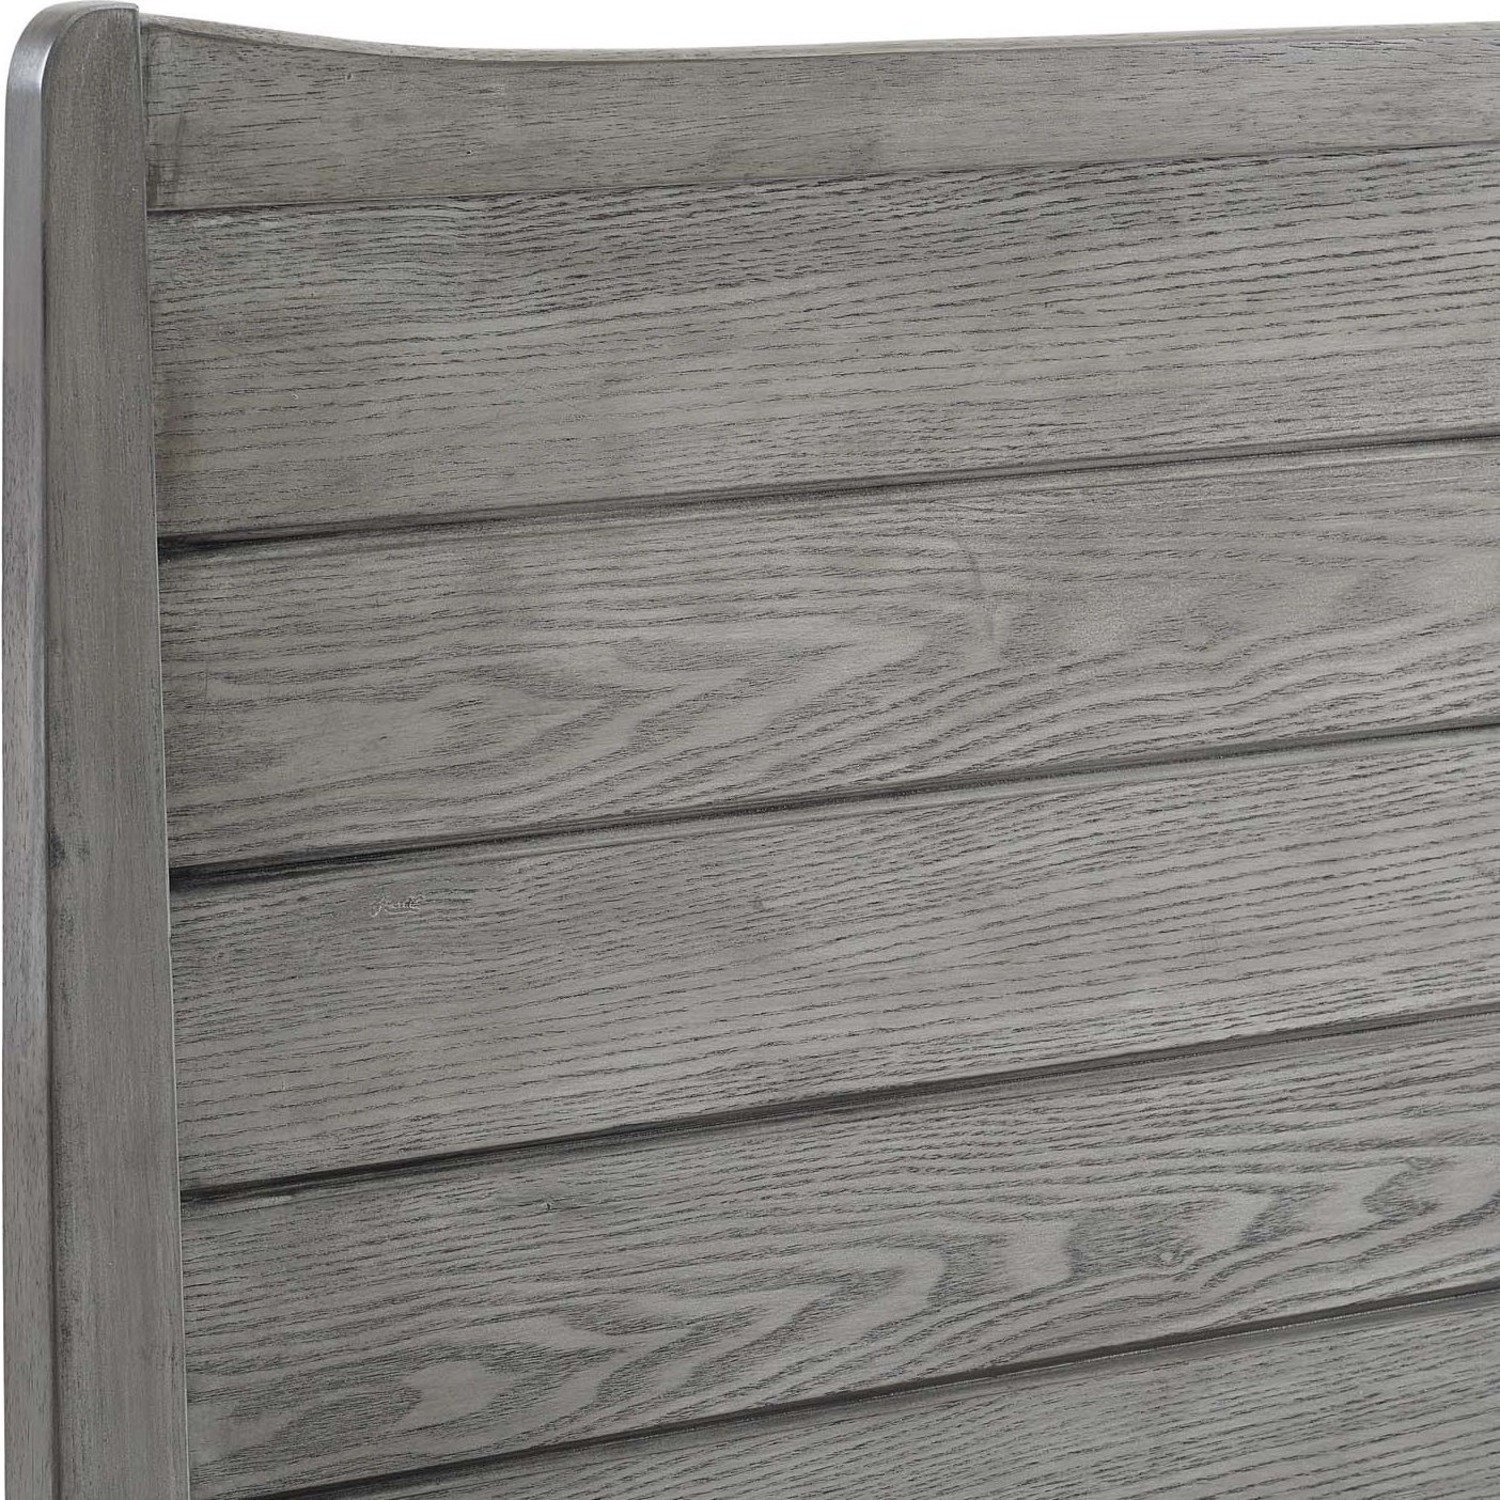 Rustic Queen Platform Bed In Gray Wood Finish - image-5